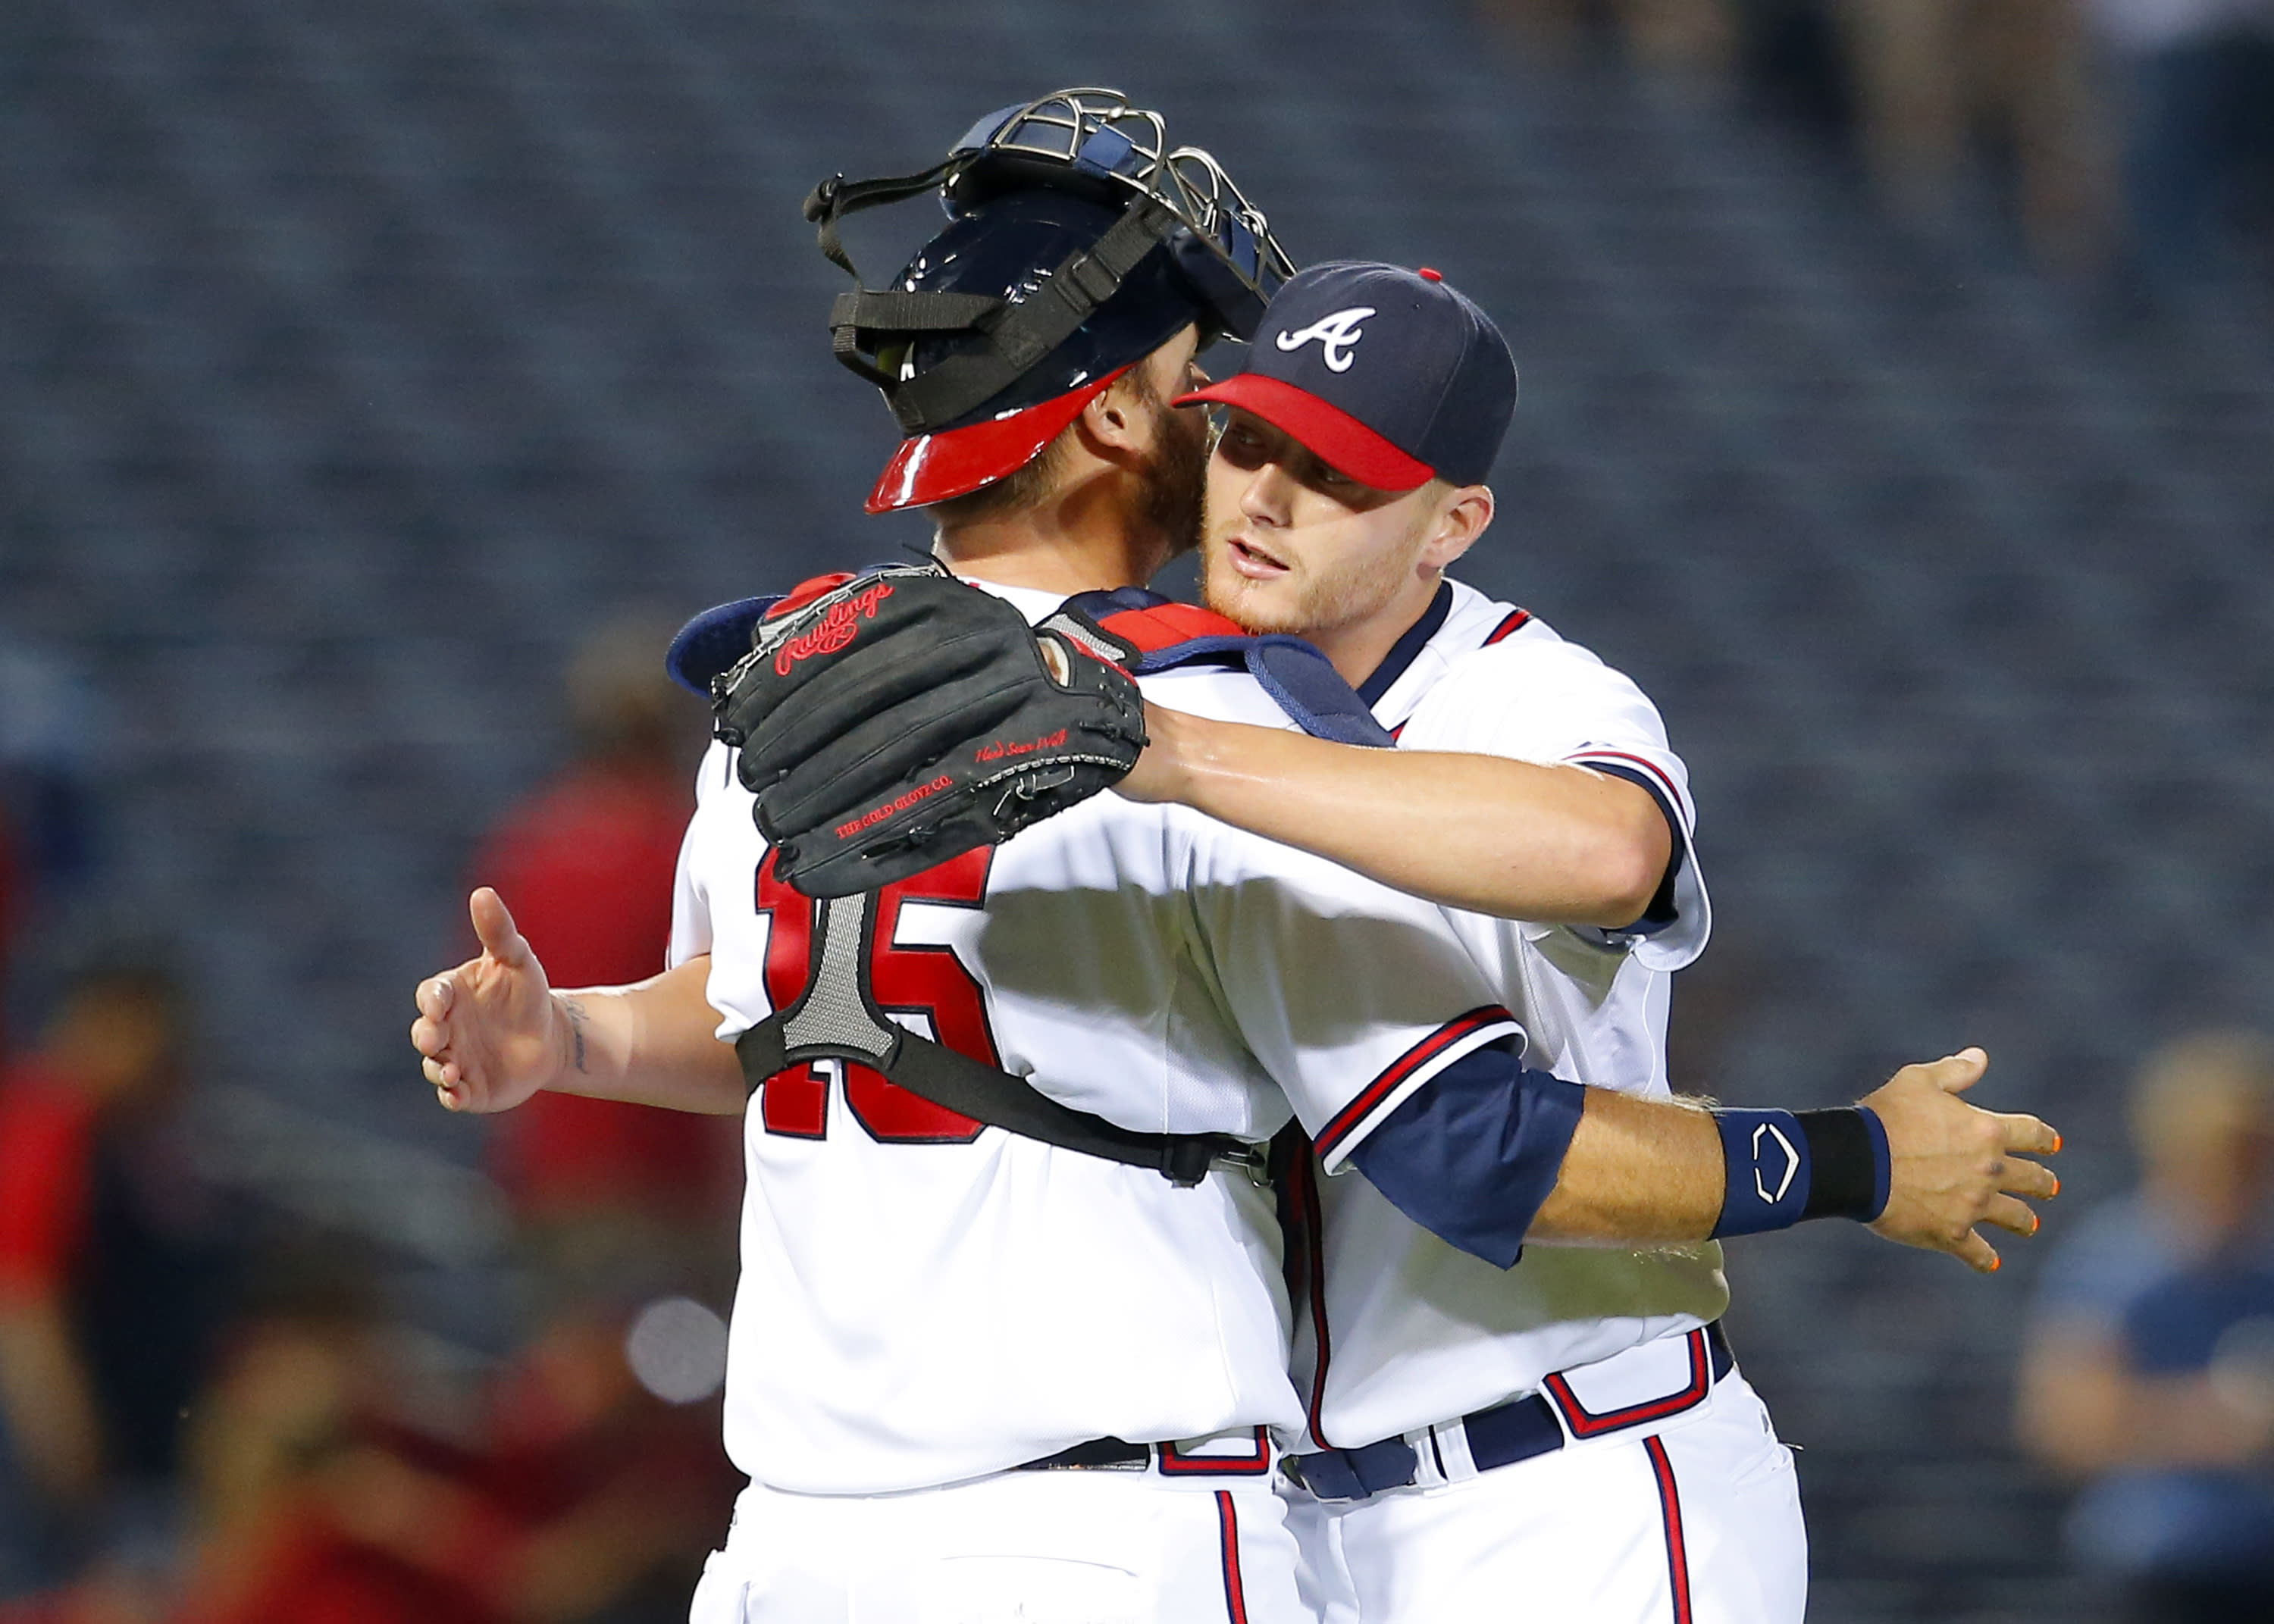 Shelby Miller's complete game gem leads Braves over Phillies